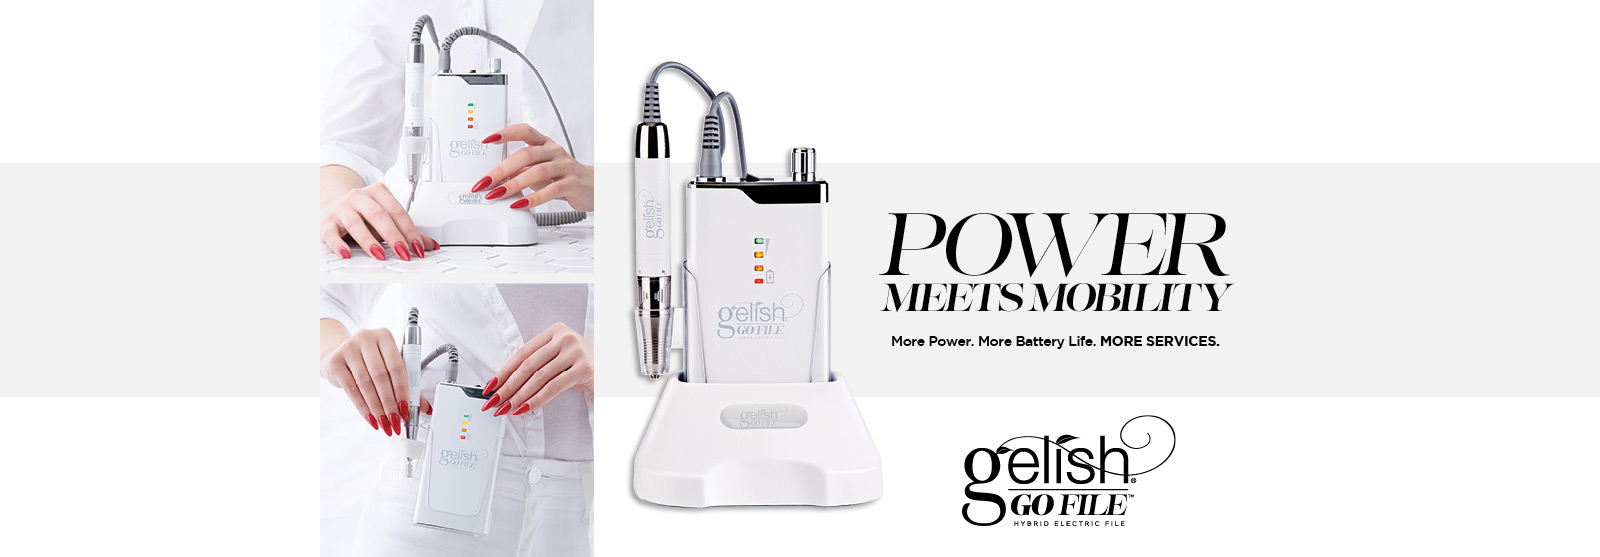 Power meets mobility. More Power, more batterly life, more services. Gelish Go File.